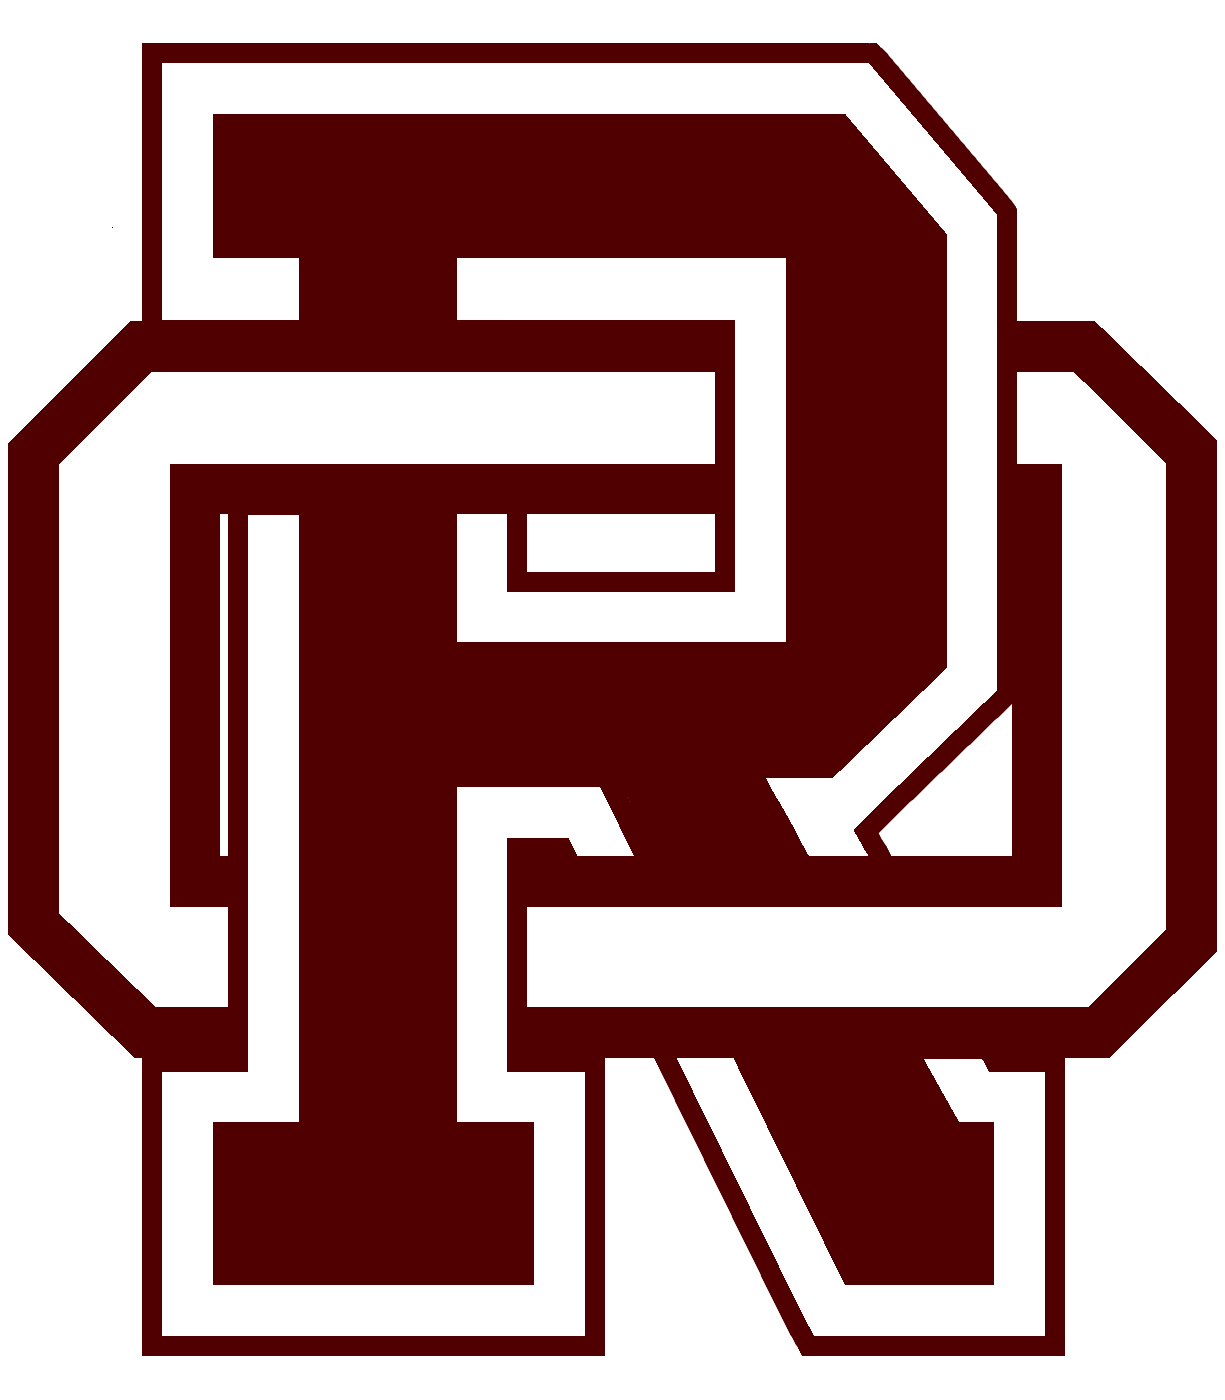 ROISD Athletic logo